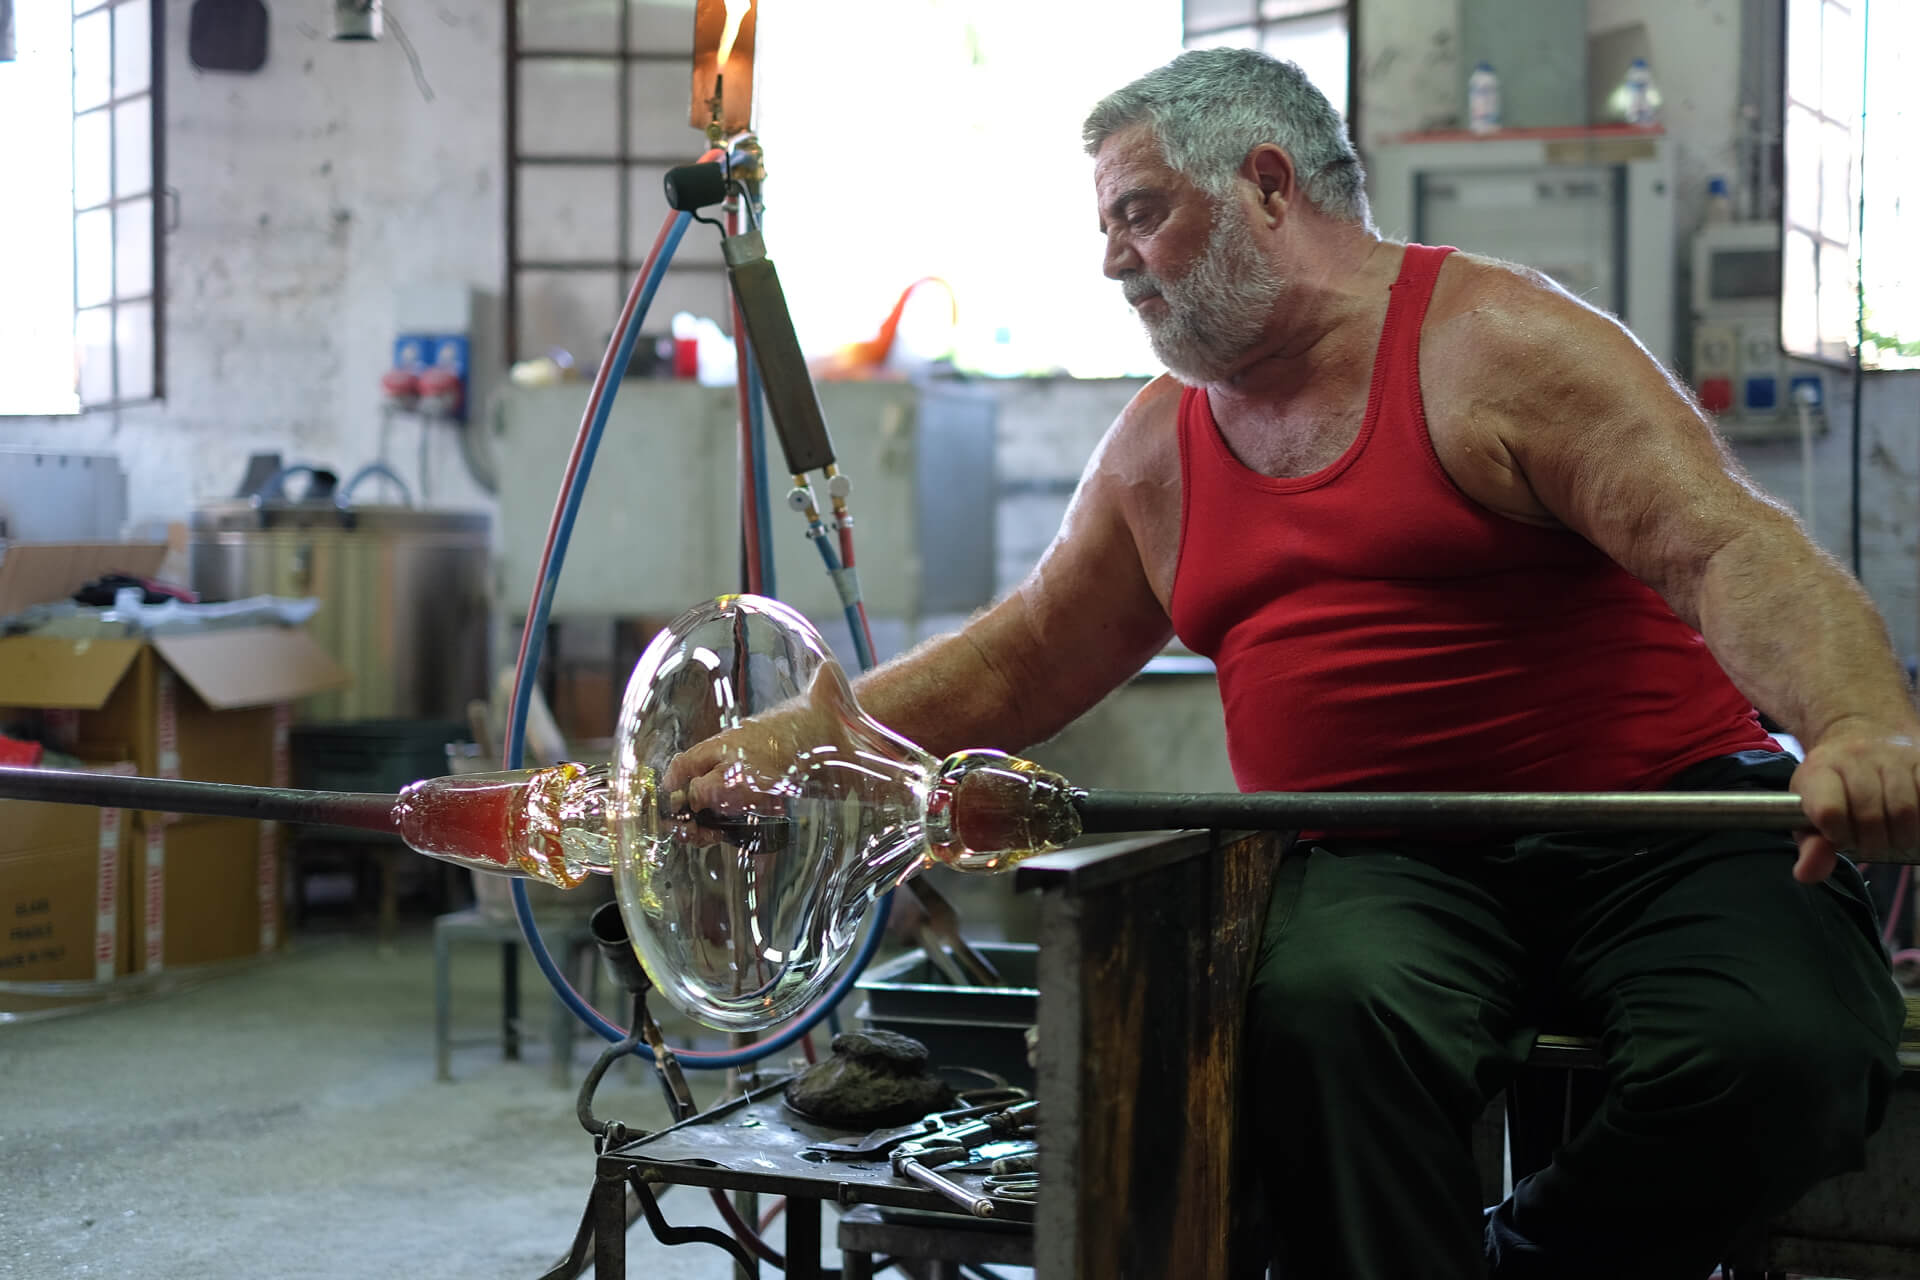 blowing glass, Silvano Signoretto